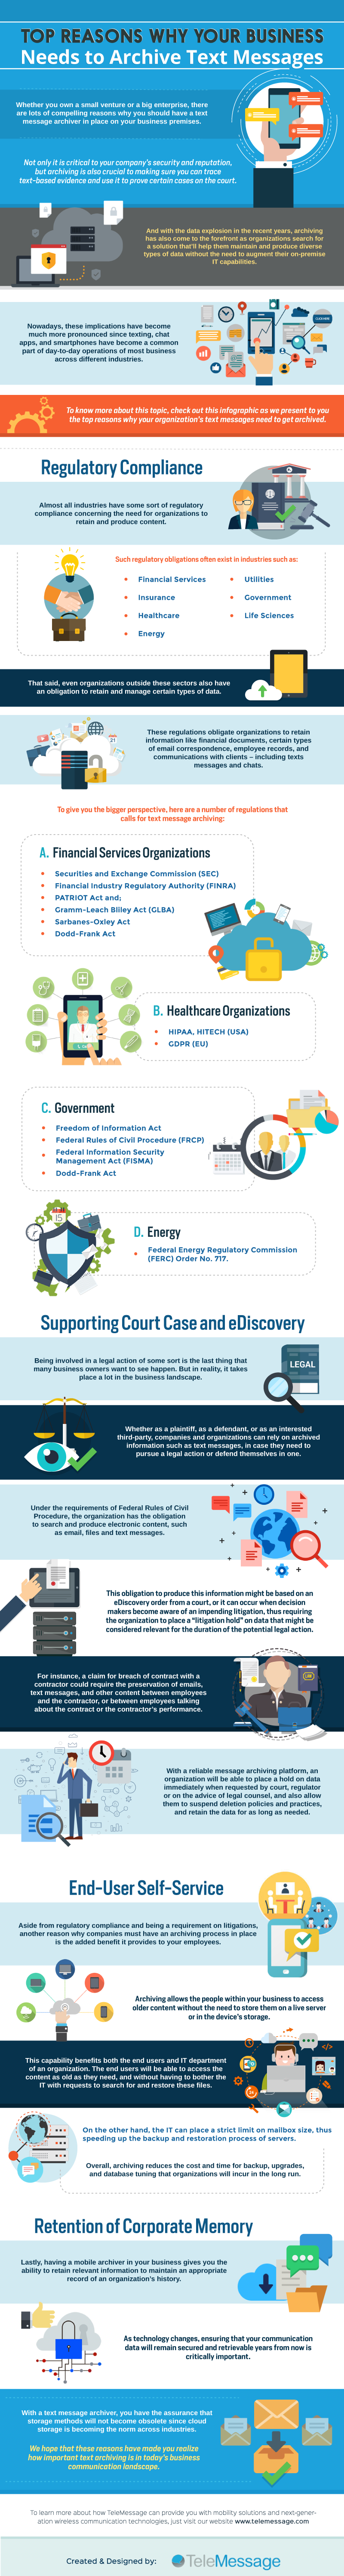 Top Reasons Why Your Business Needs Text Messages Archiving - Infographic